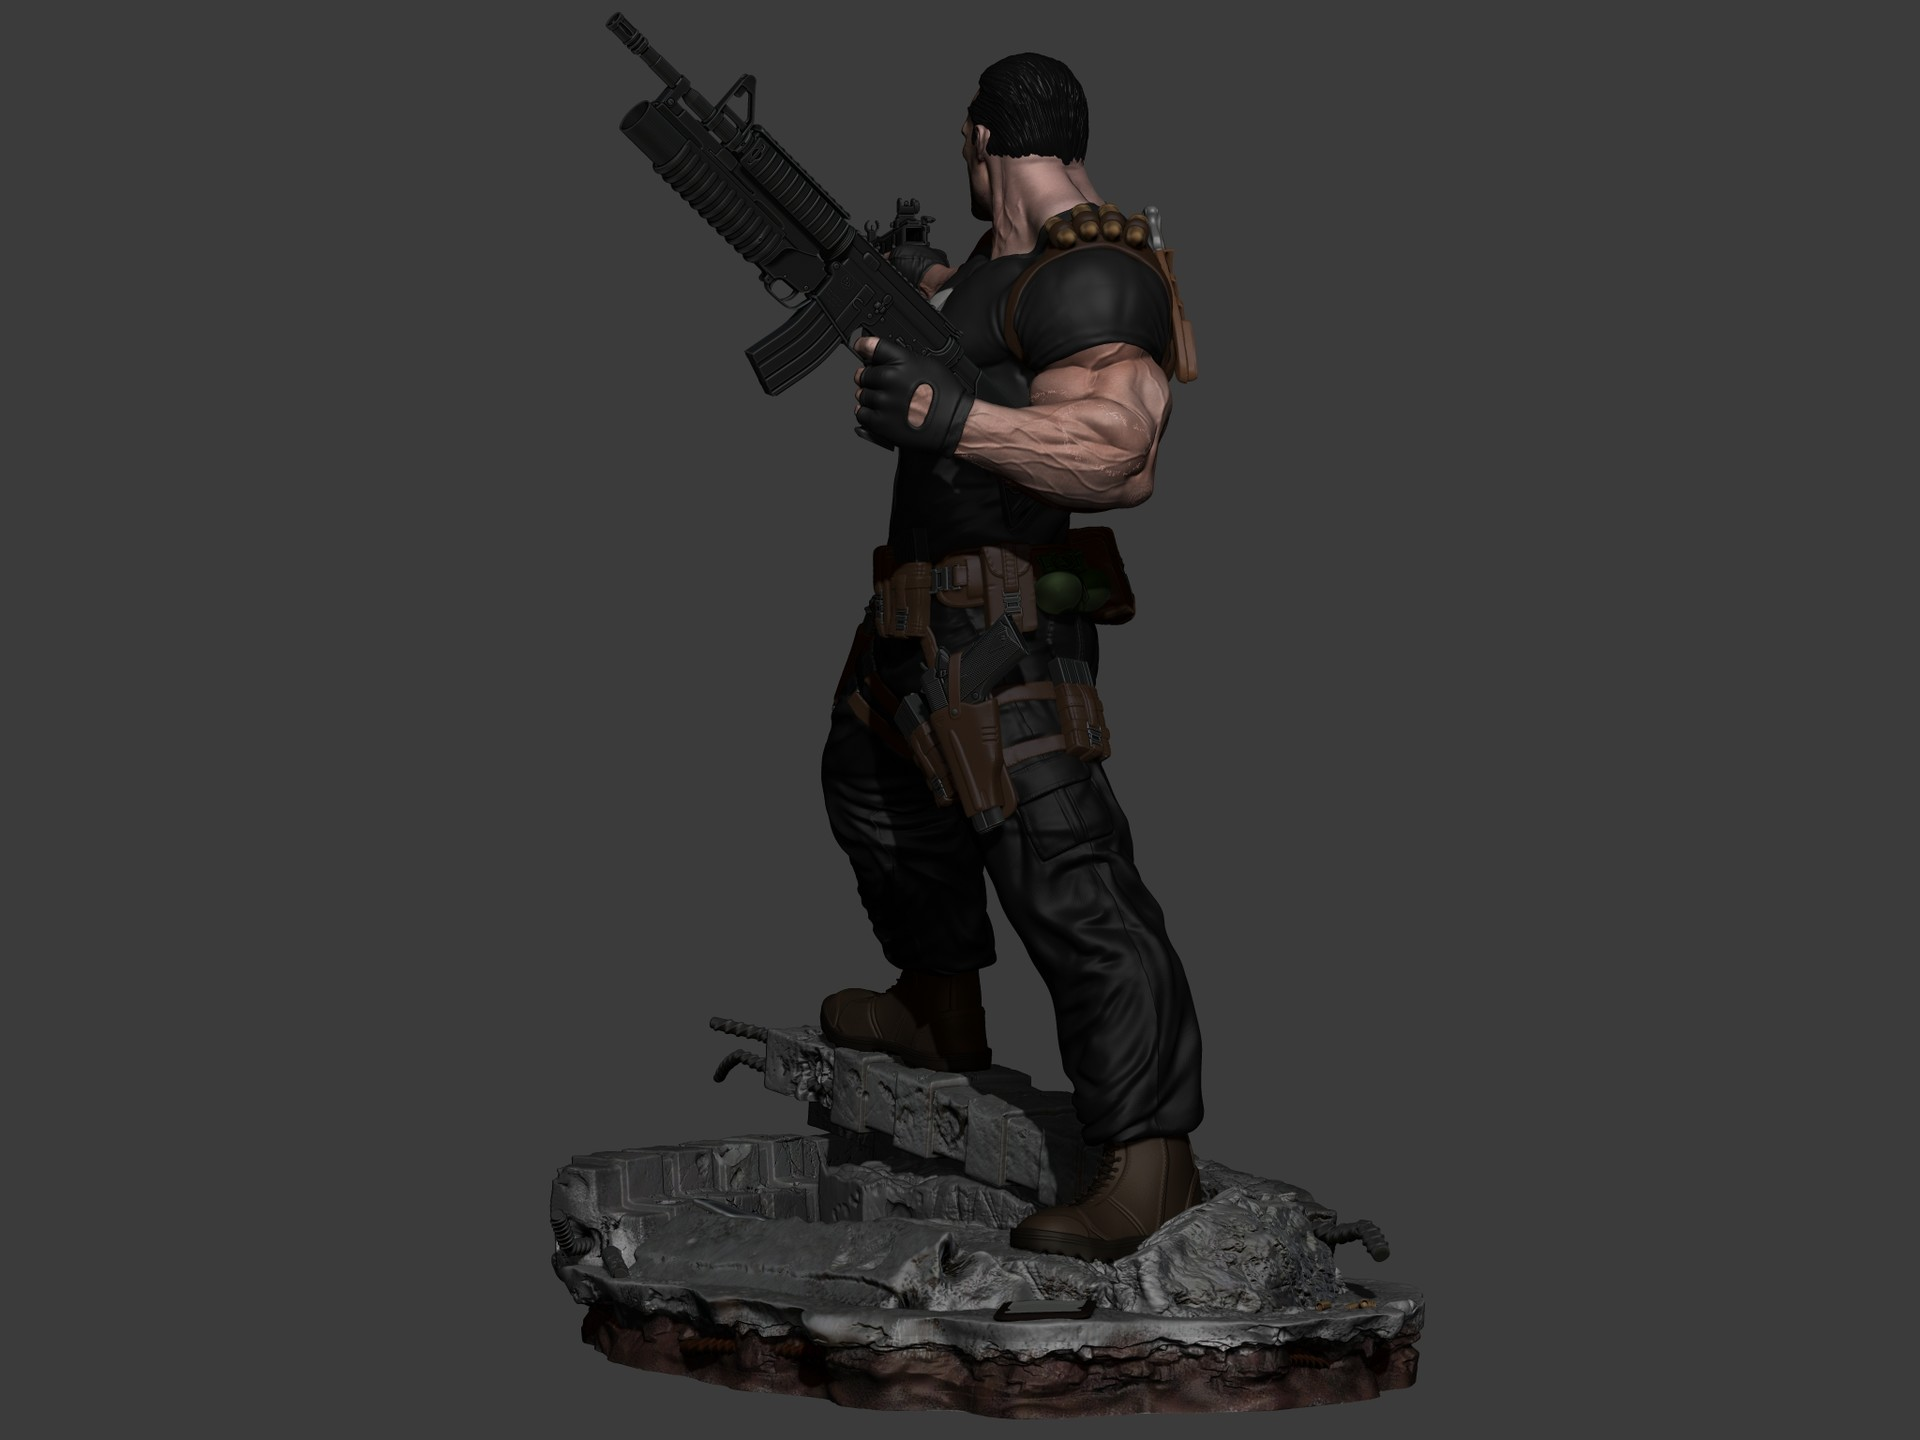 Franco carlesimo punisher prev 007